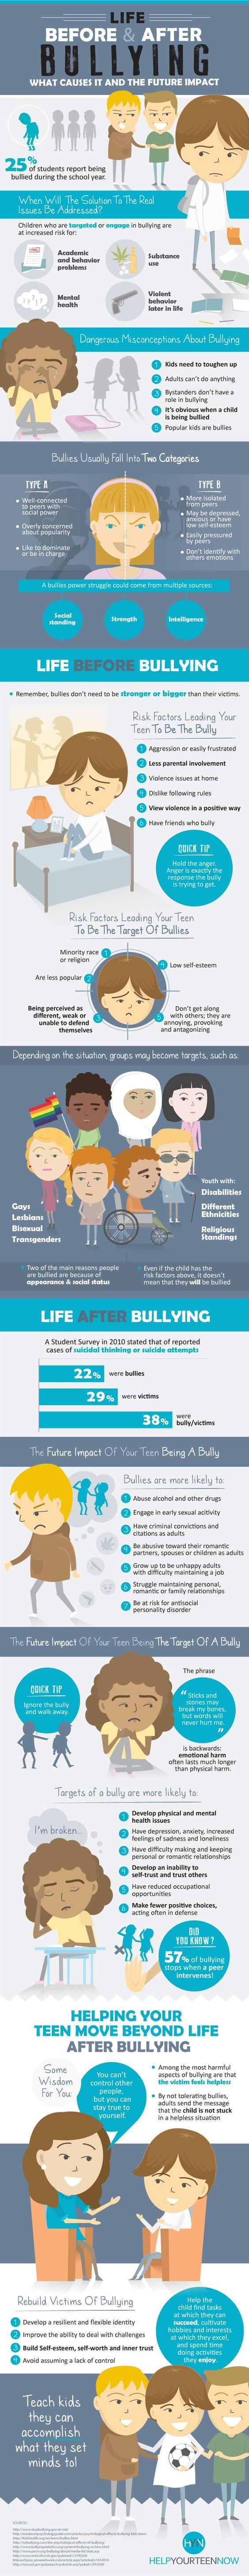 The issues caused by bullying have always been a threat to the well-being of teenagers and children on both sides. Bullying impacts both the victim and the bully for years to come. In the infographic below, we've concluded that the events leading up to a teen becoming a bully is just as important to understand as the issues caused afterwards.: